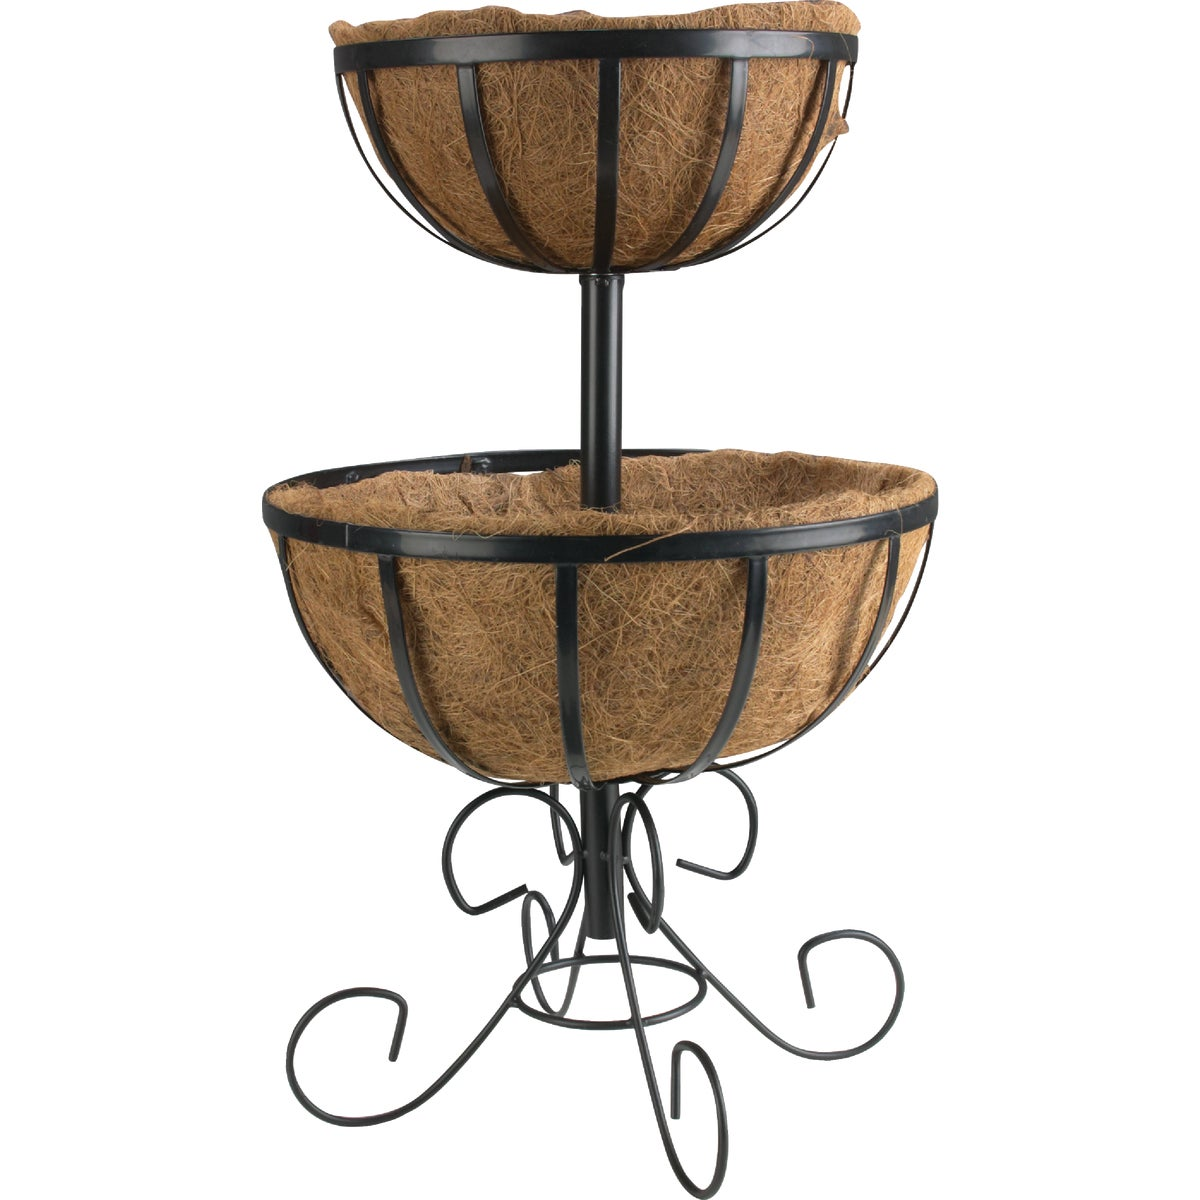 """27"""" 2 TIER PLANTER STAND - FP802 by Do it Best"""